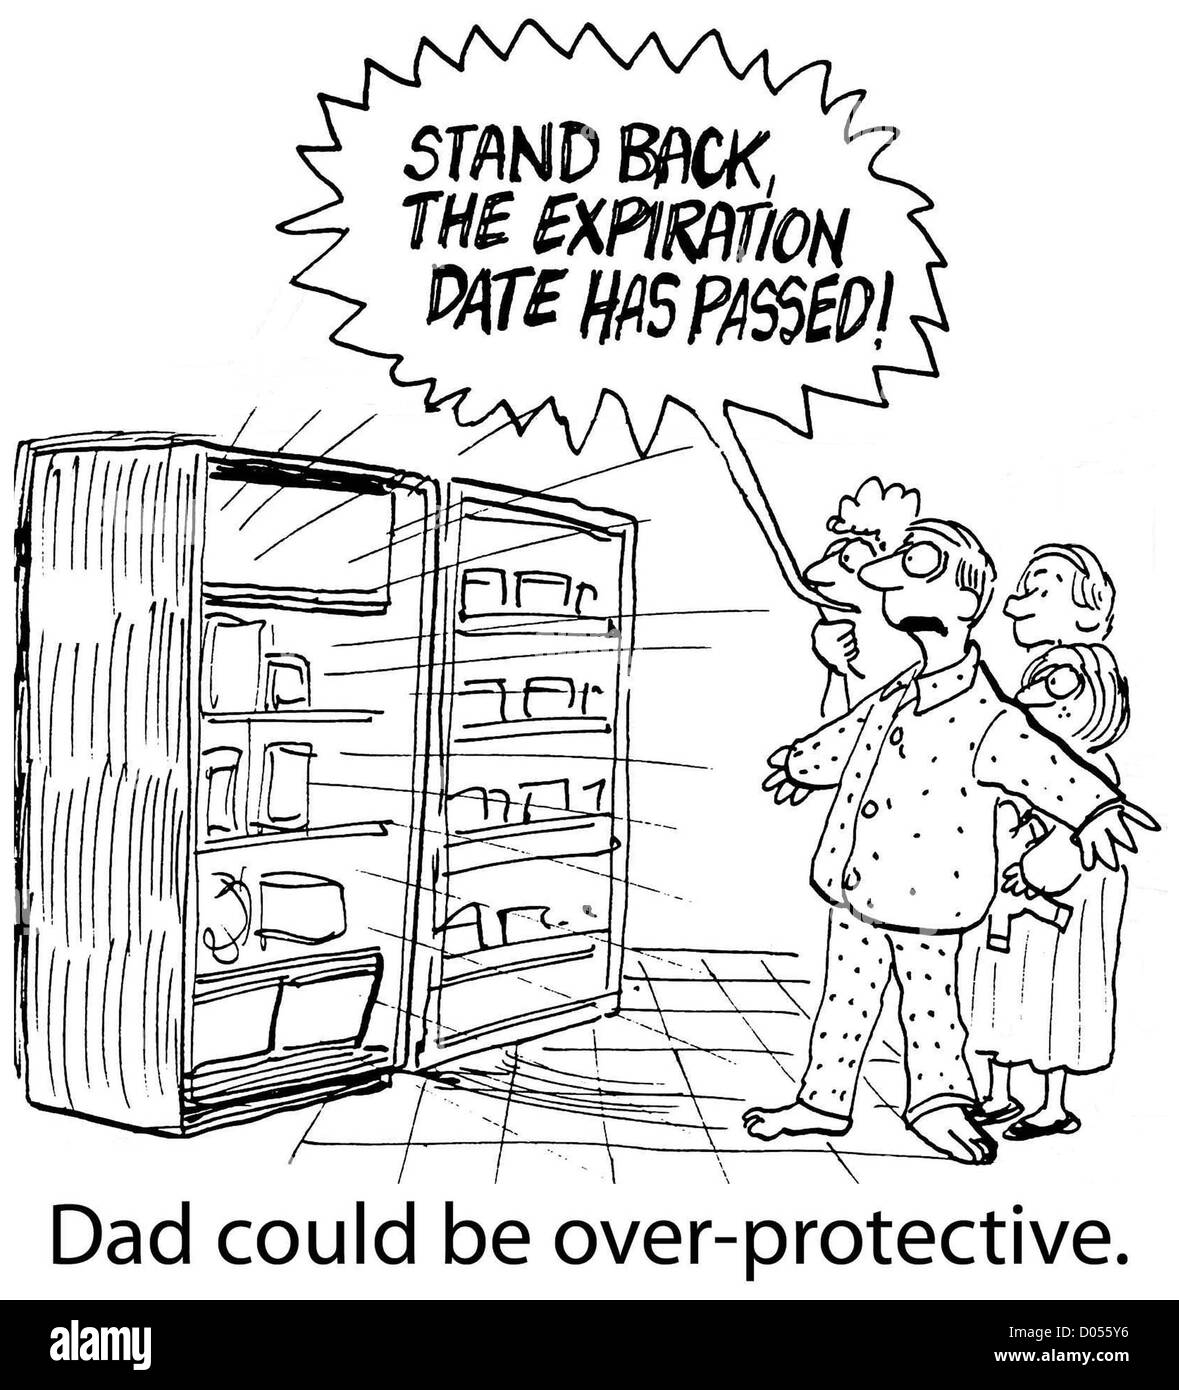 A father is overly protective of his family, 'Dad could be over-protective.' - Stock Image